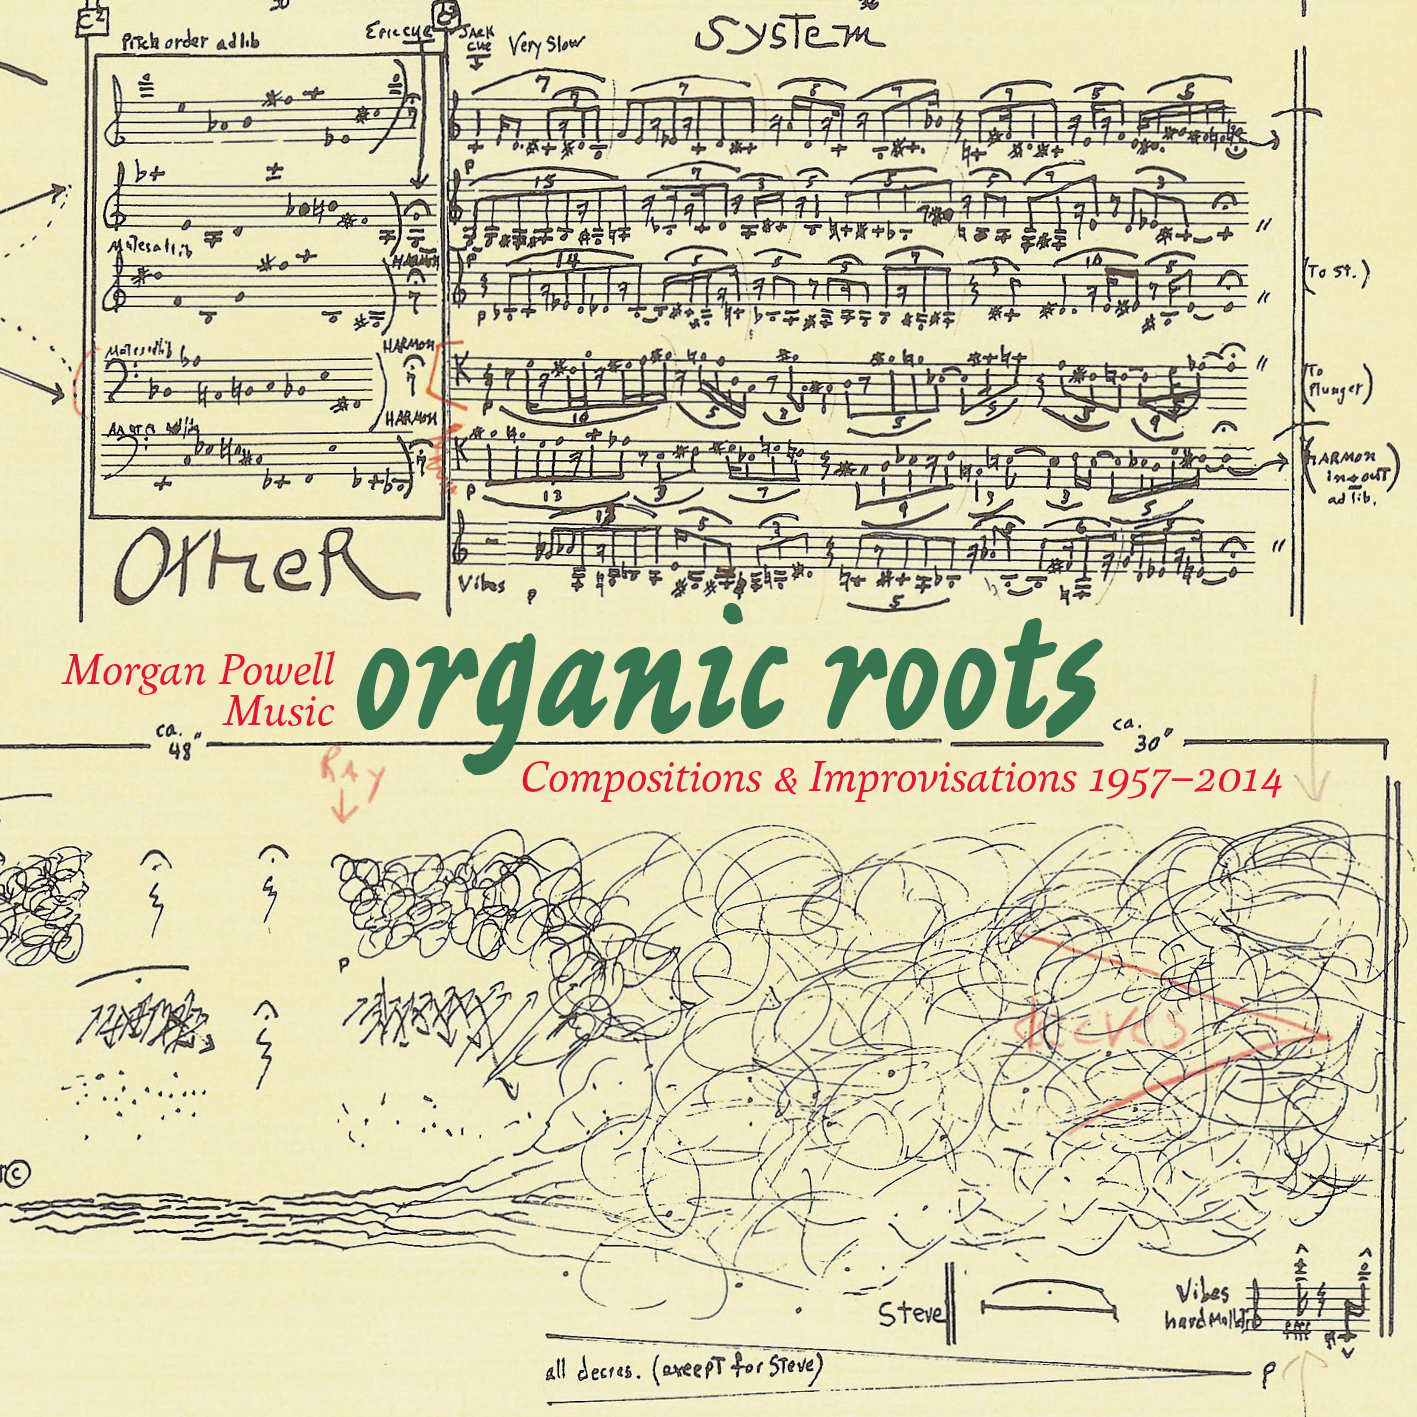 Morgan Powell Music: Organic Roots CD